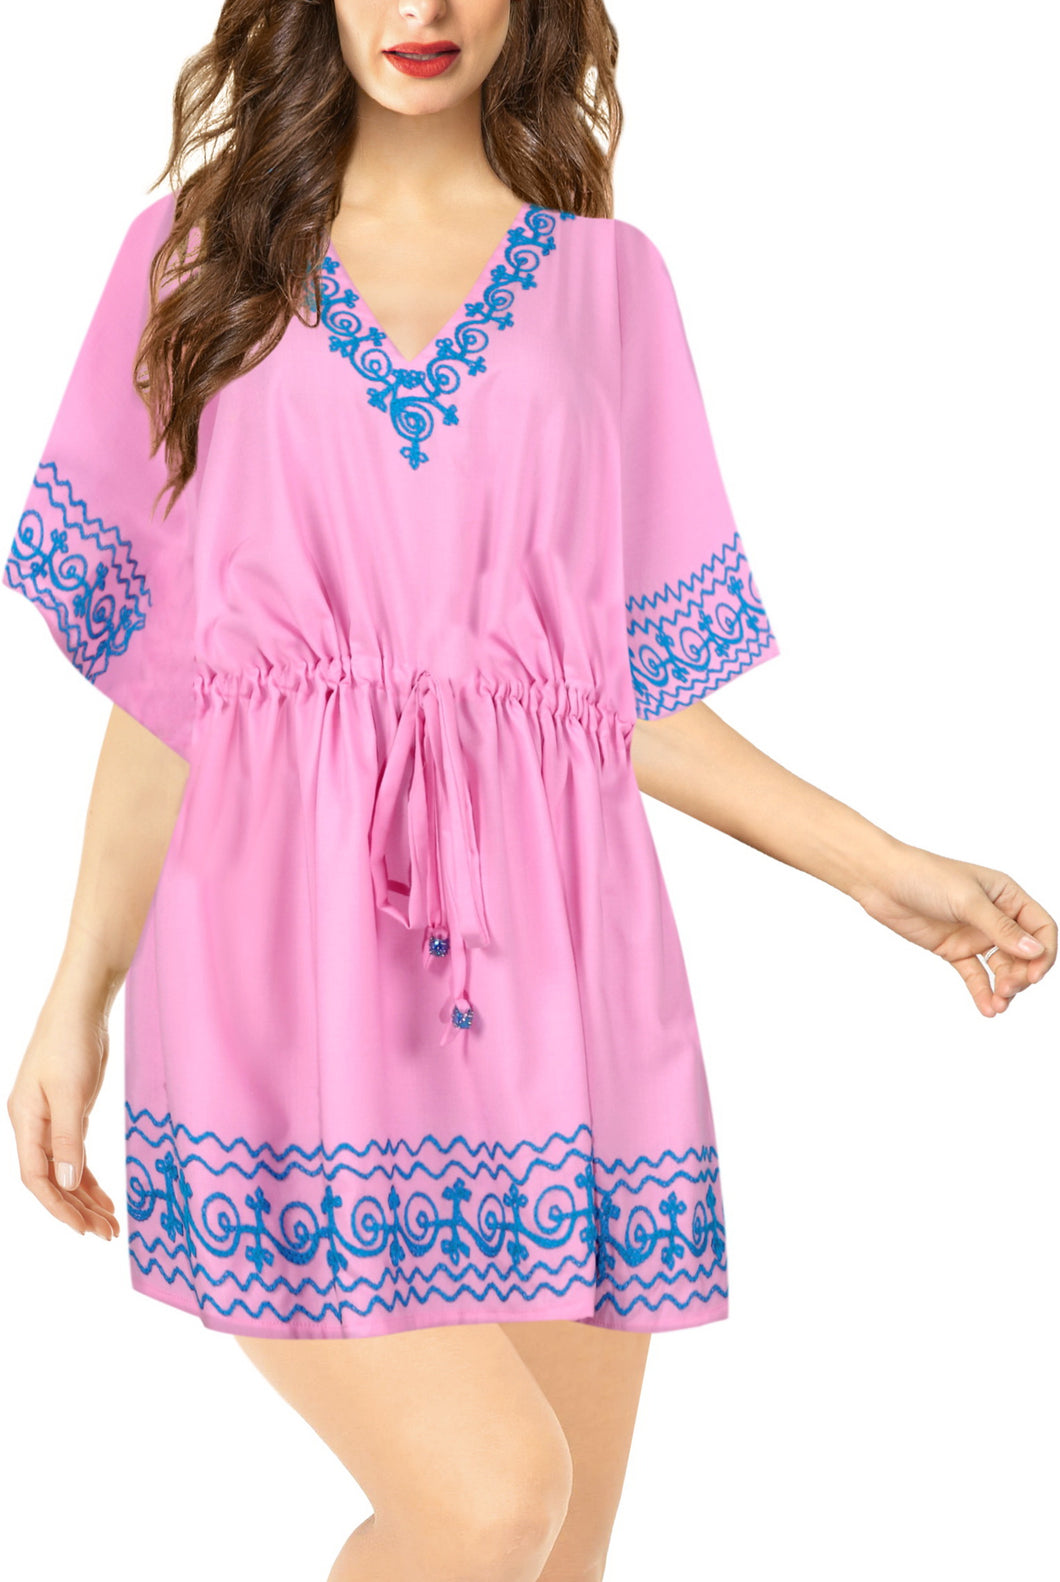 la-leela-bikini-swim-beach-wear-swimsuit-cover-ups-women-caftan-dress-solid-OSFM 16-28W [XL- 4X]-Pink_B59